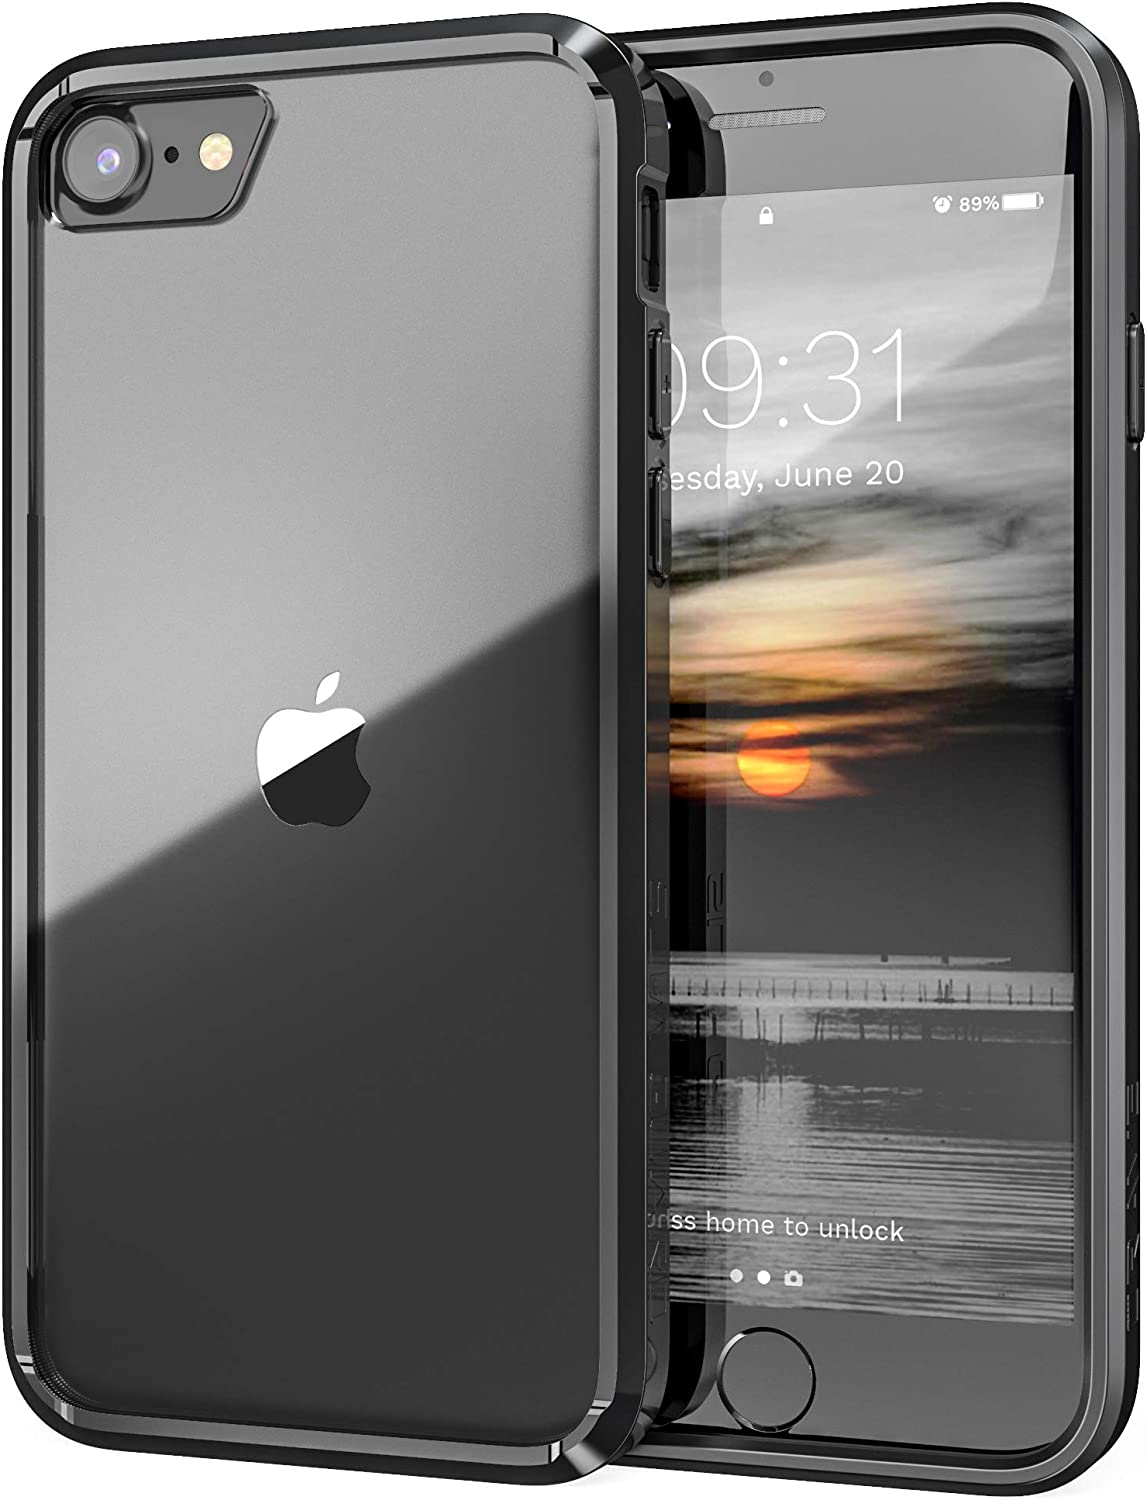 Crave iPhone SE 2020 Case, iPhone 8 Case, iPhone 7 Case, Slim Guard Protection Series Case Apple iPhone SE/8/7 (4.7 Inch) - Black